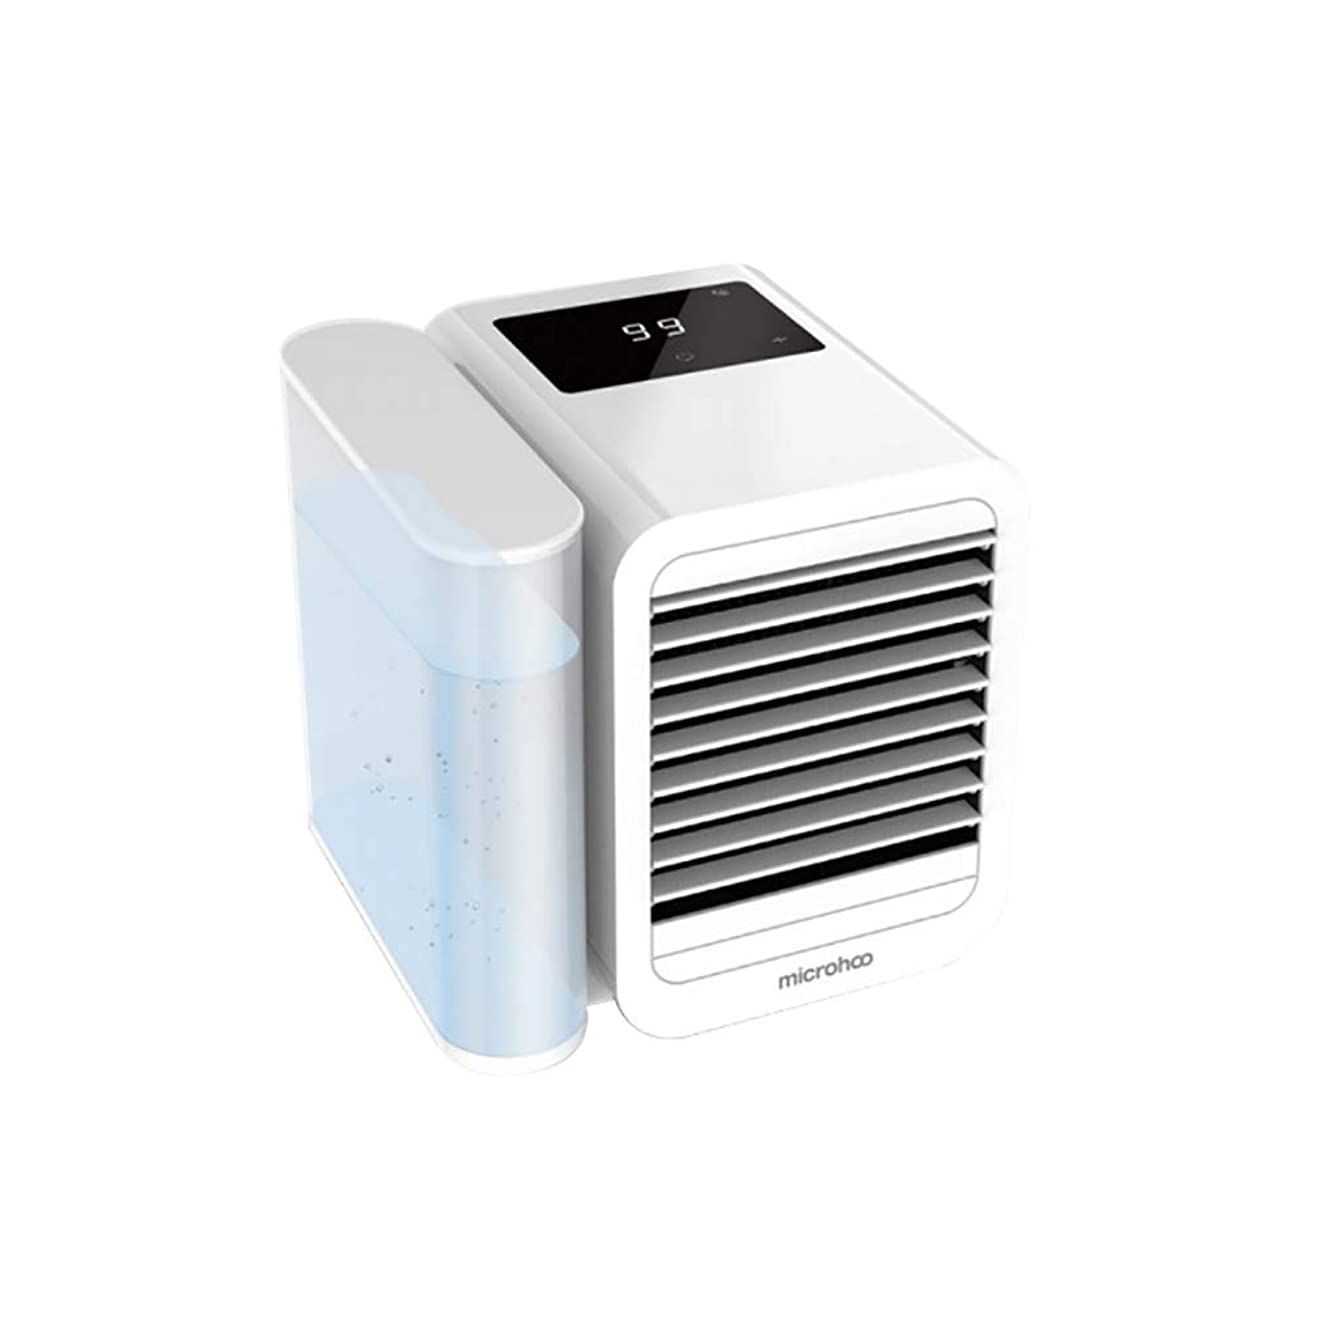 Personal Air Cooler Portable Air Conditioner Fan With Usb, Rechargeable Mini Cooling Desktop Fan, Cooler Fan/Humidifier and Purifier 3 in 1 Evaporative Cooler for Home Room Office Outdoors